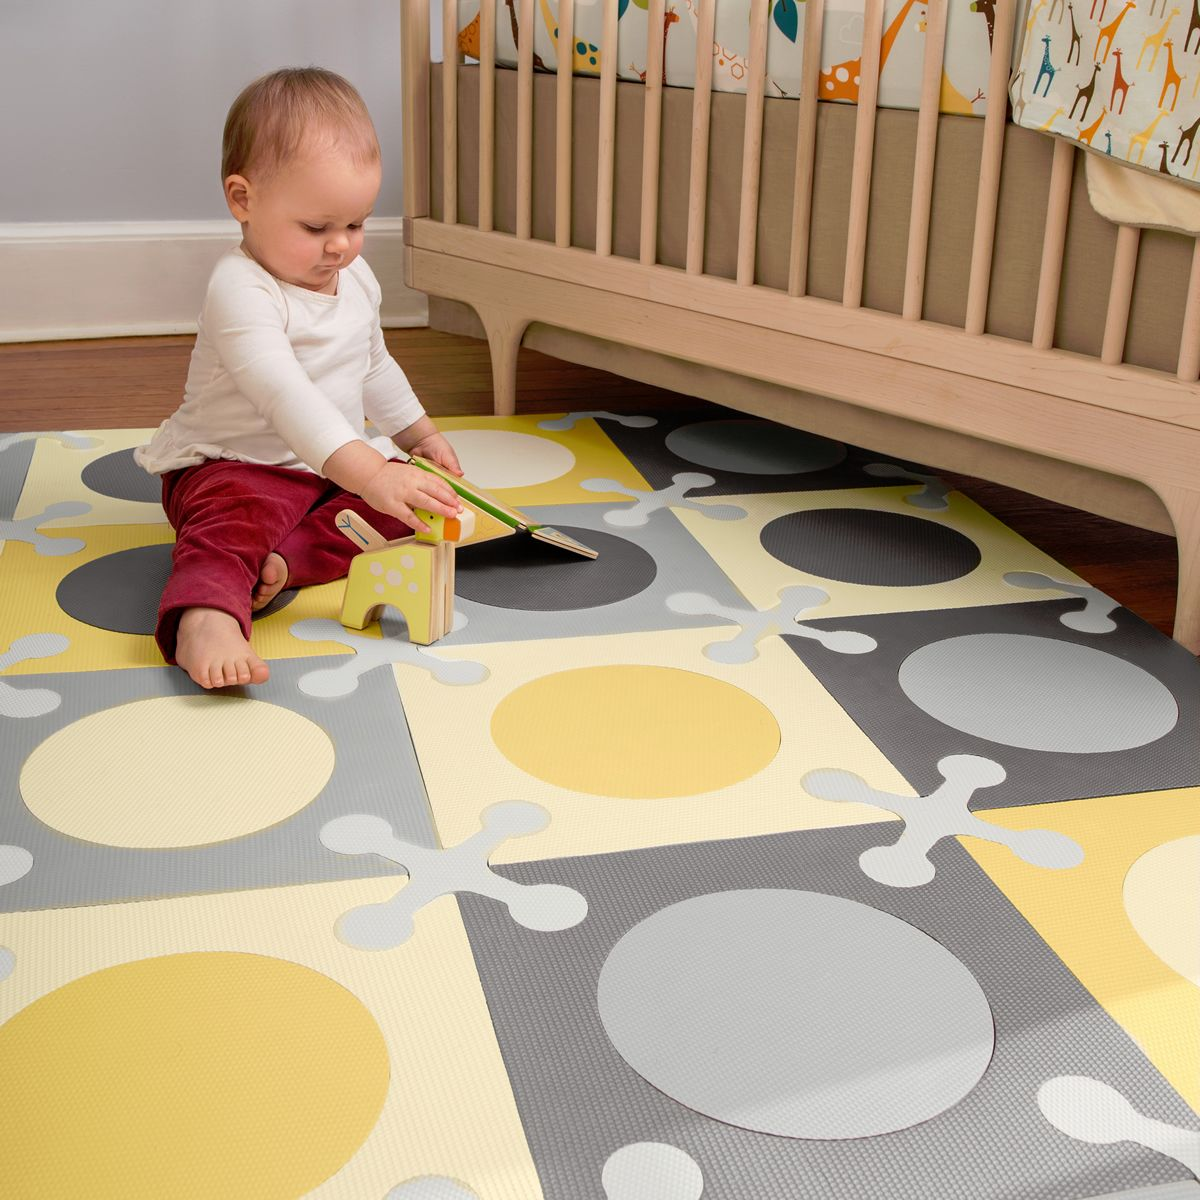 Skip Hop Playspot Interlocking Foam